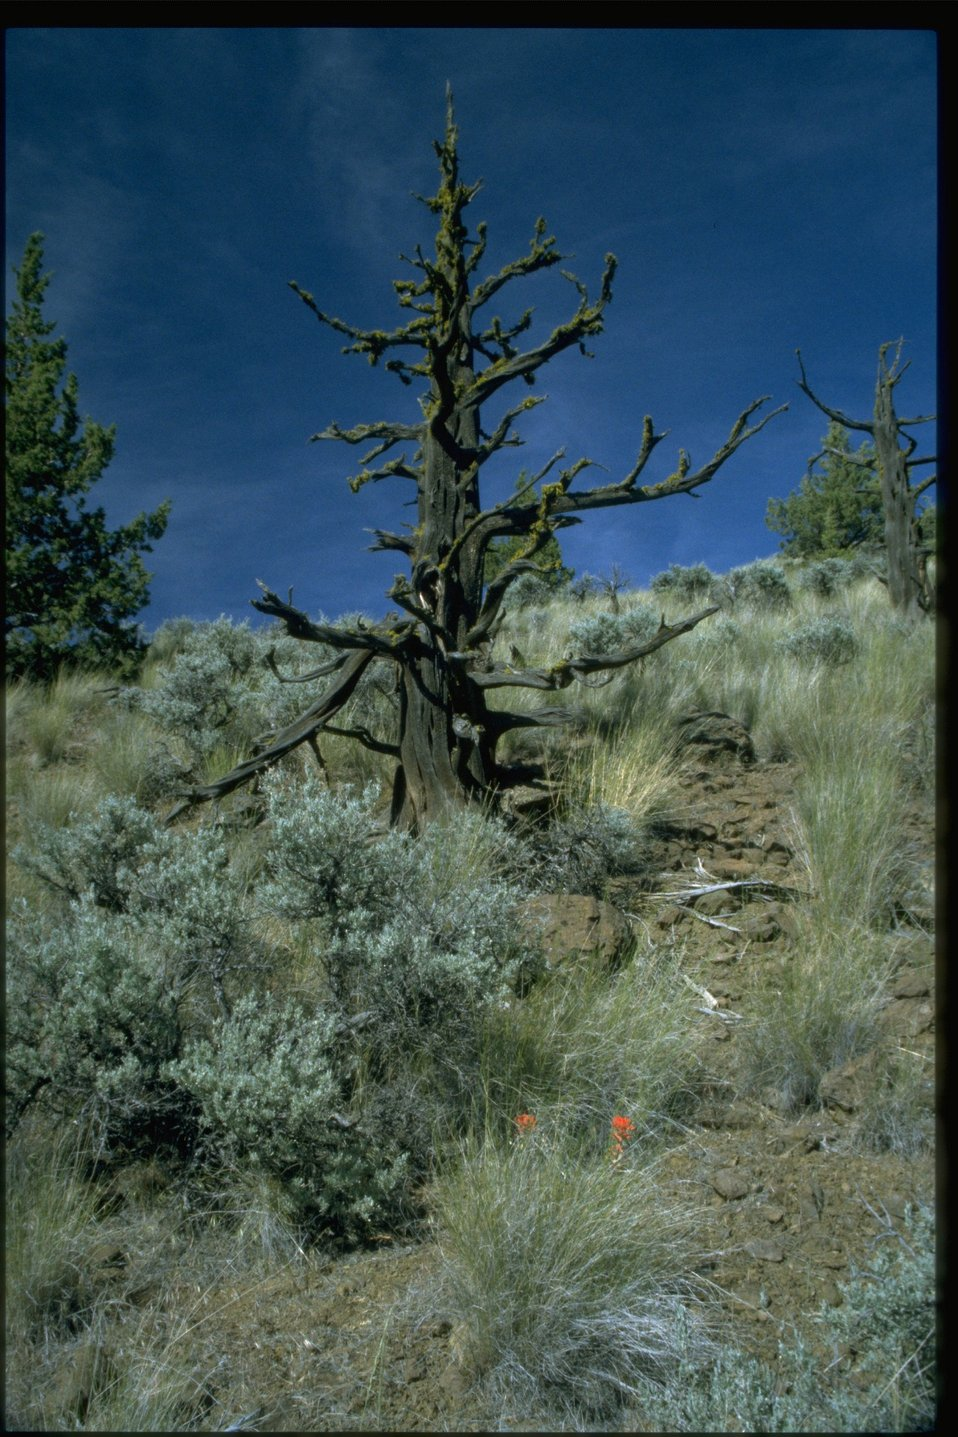 Farshot of weathered Western Juniper (Juniperus Occidentalis) snag.